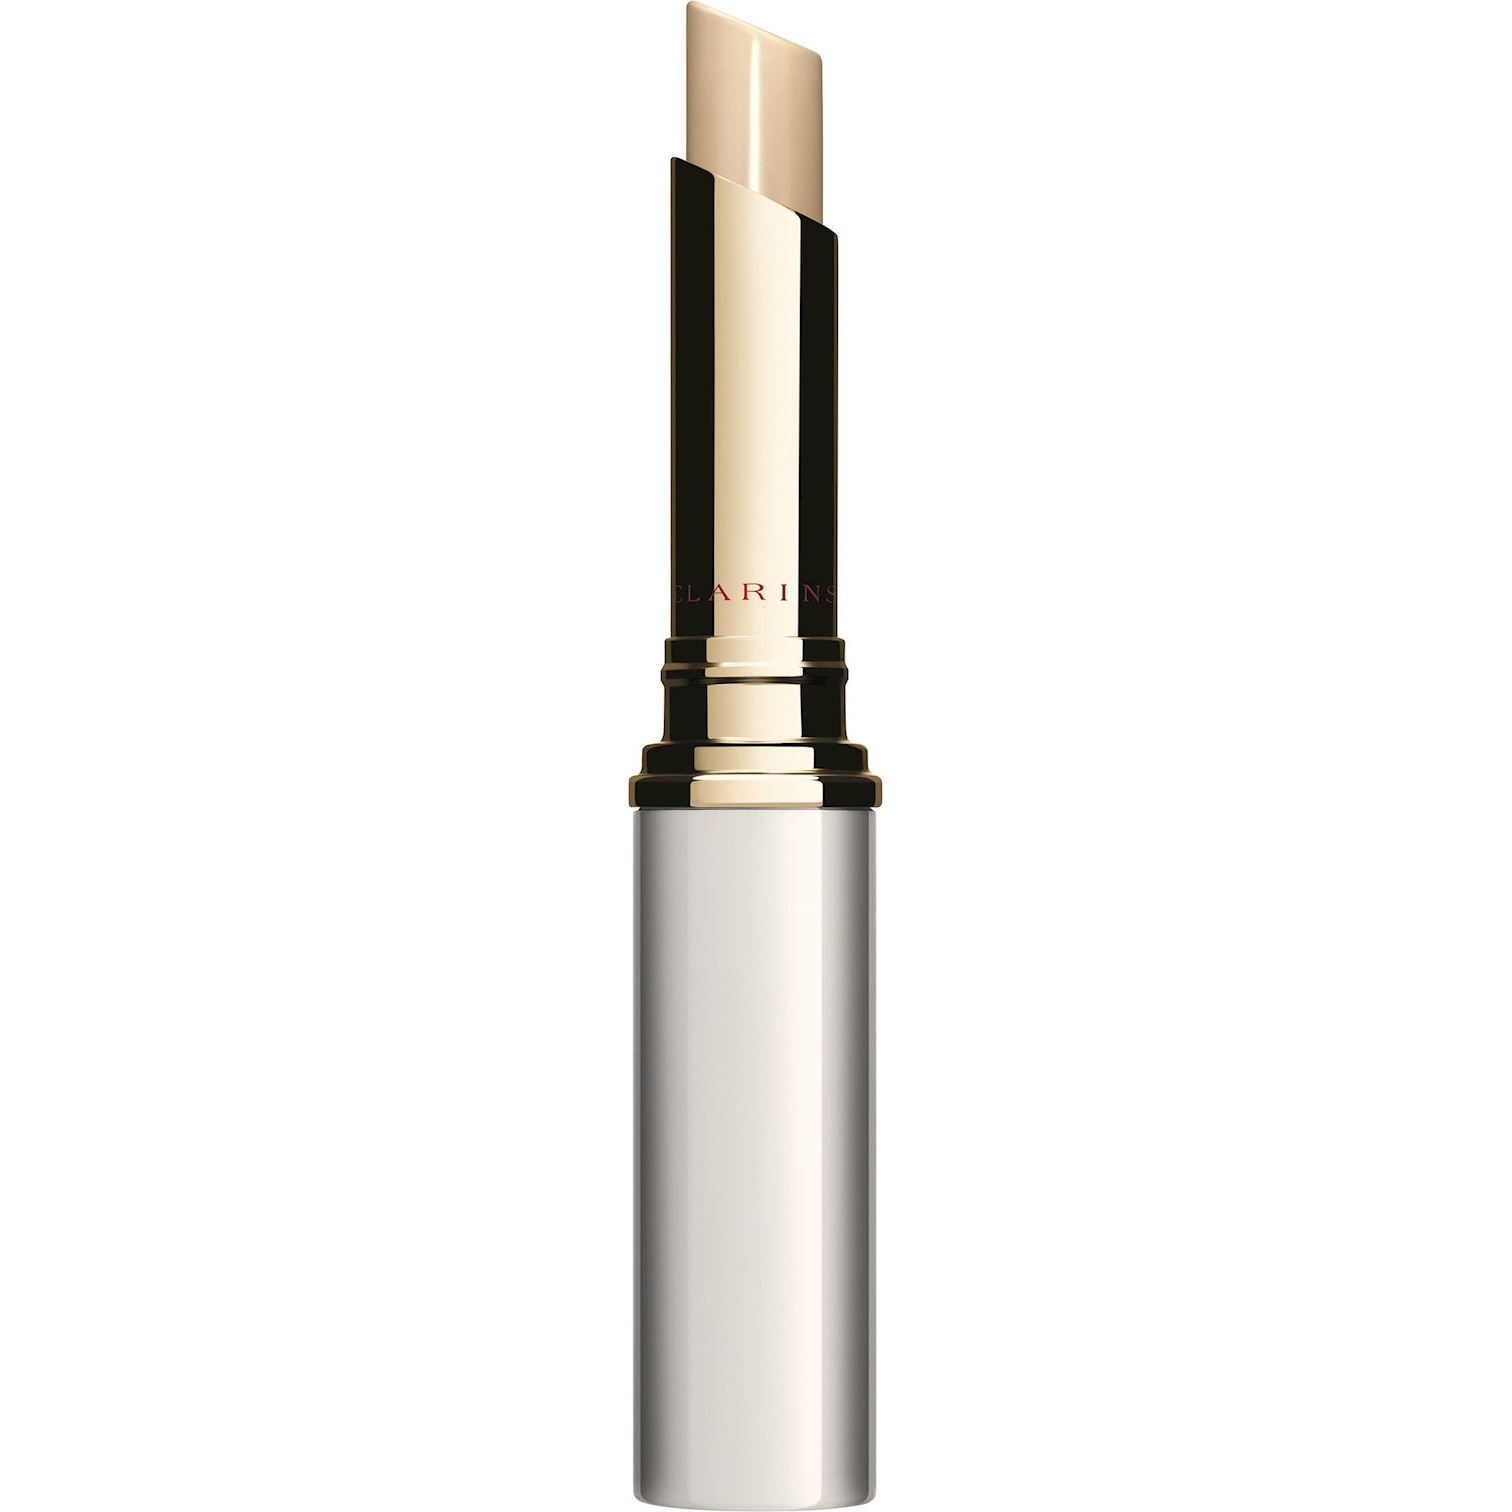 Clarins Concealer Stick 01 Light Beige